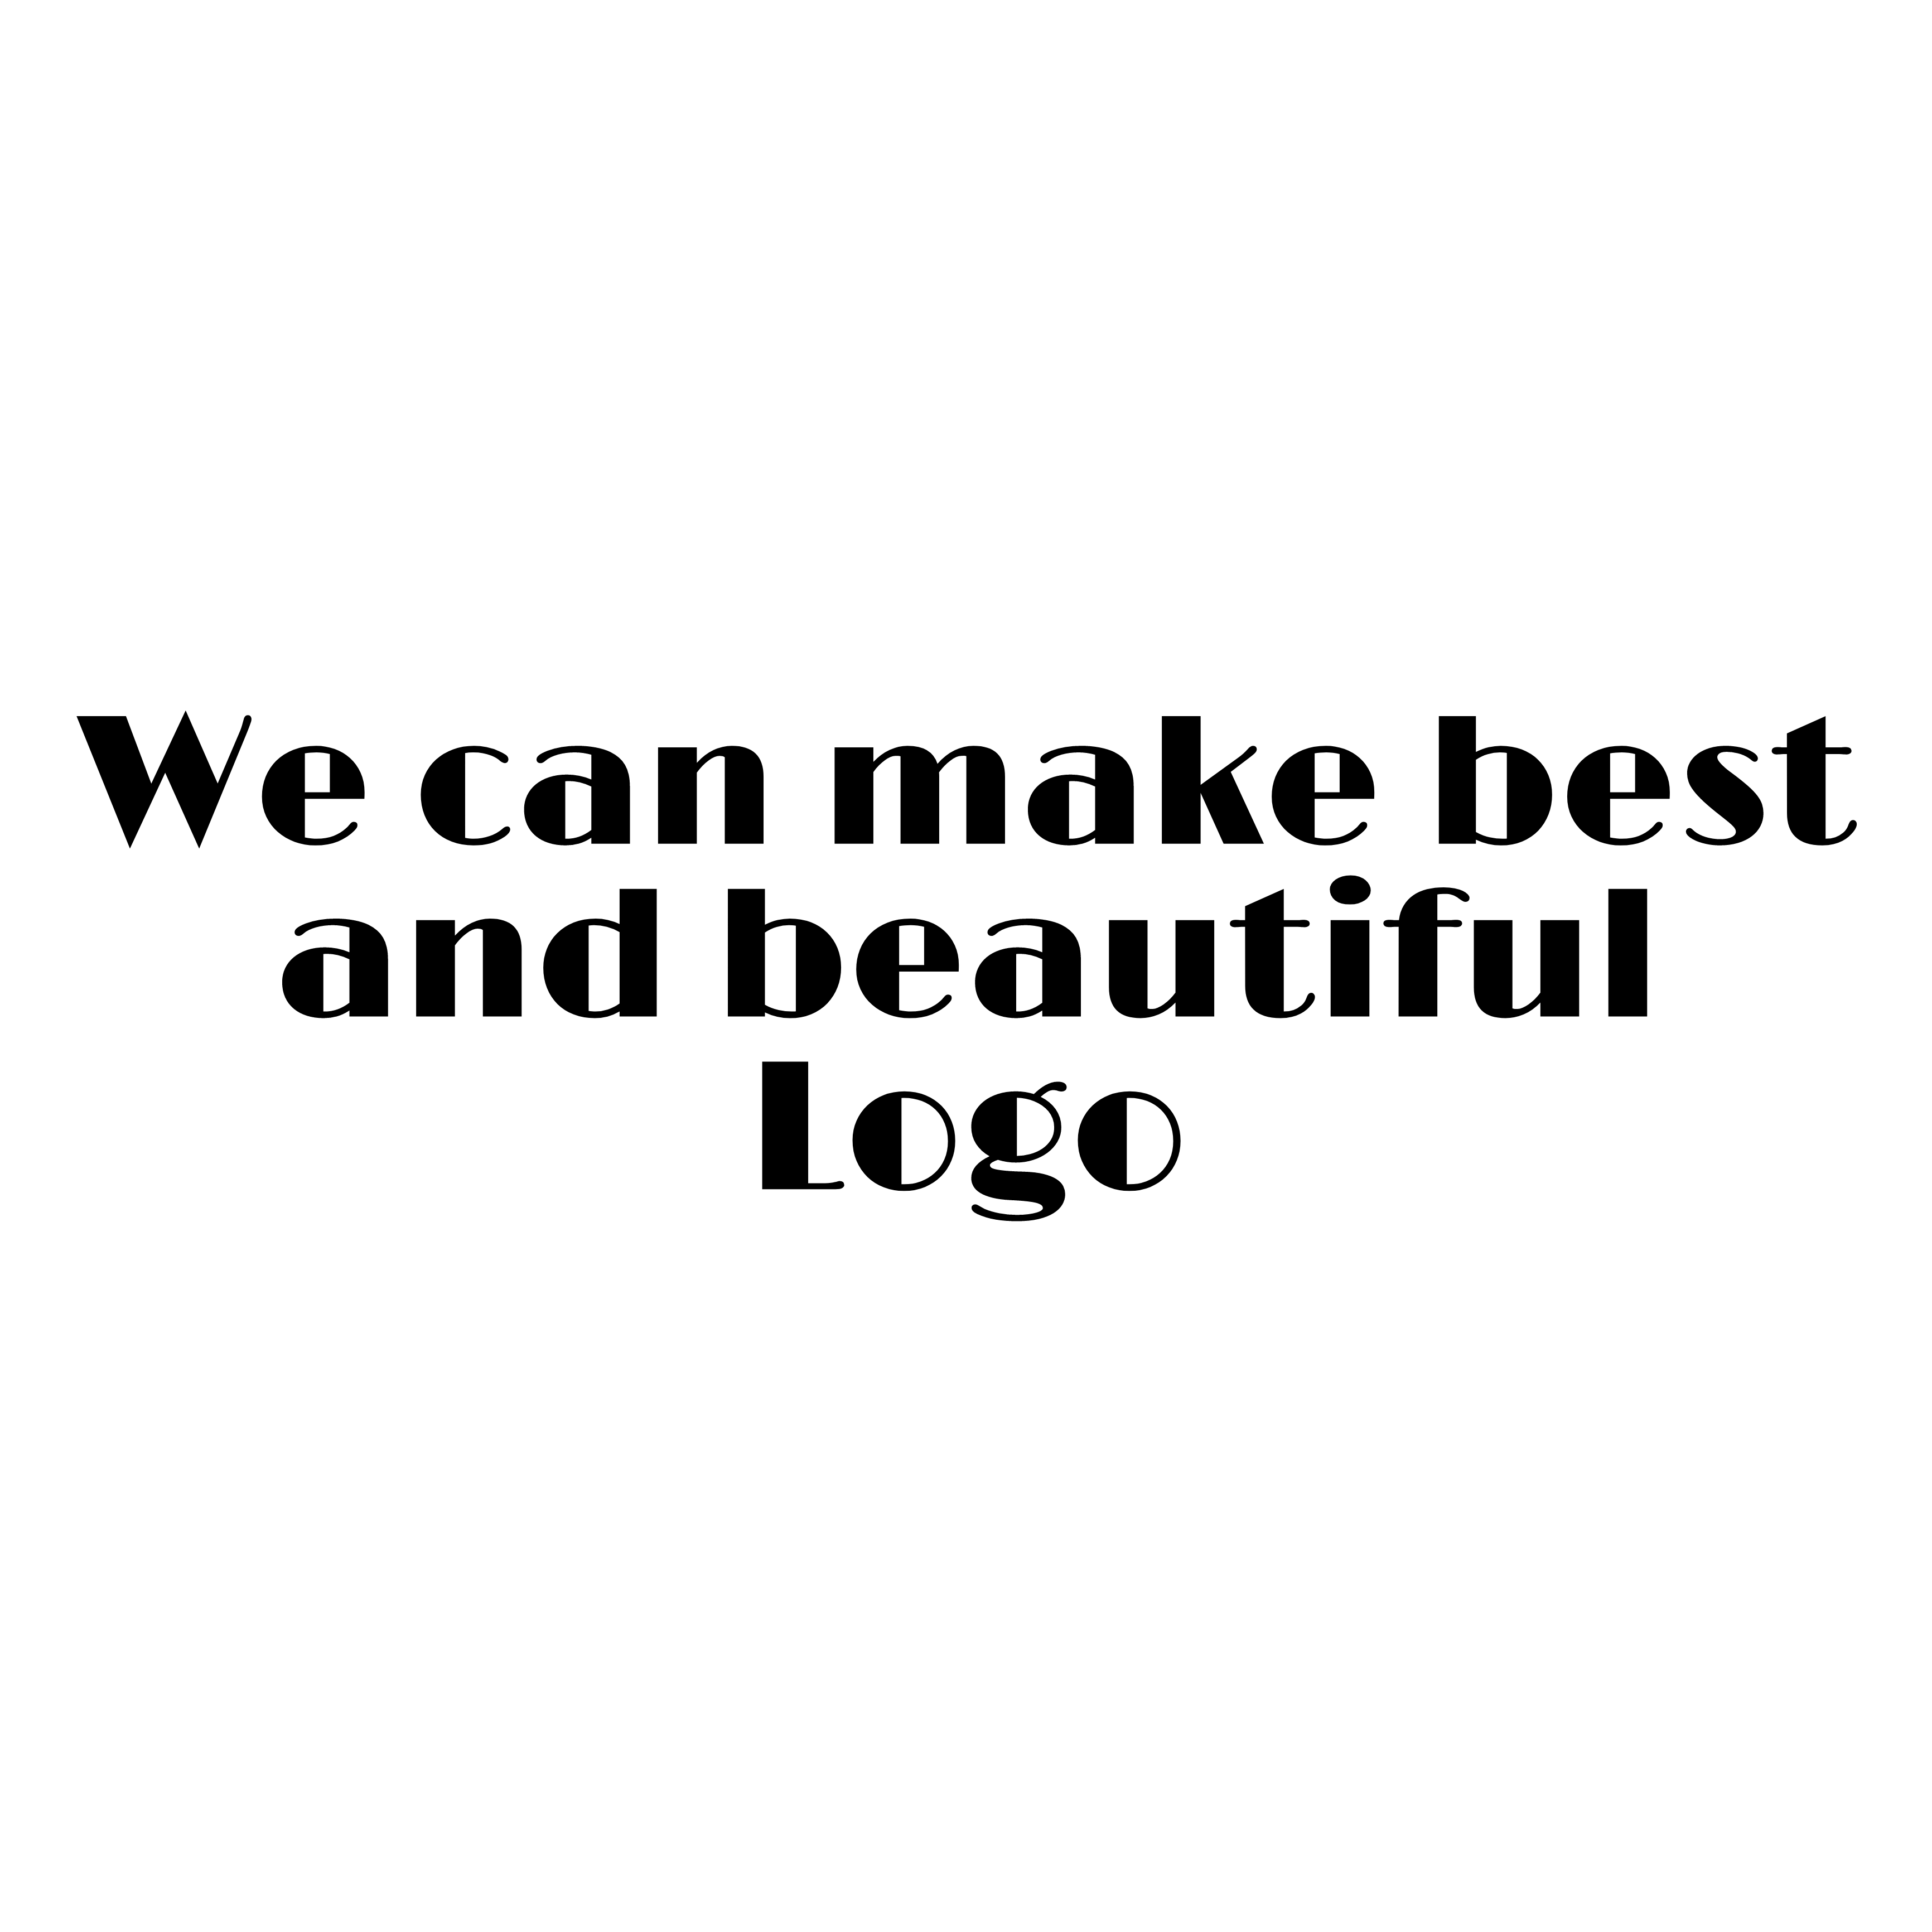 We create great and beautiful logo in short time